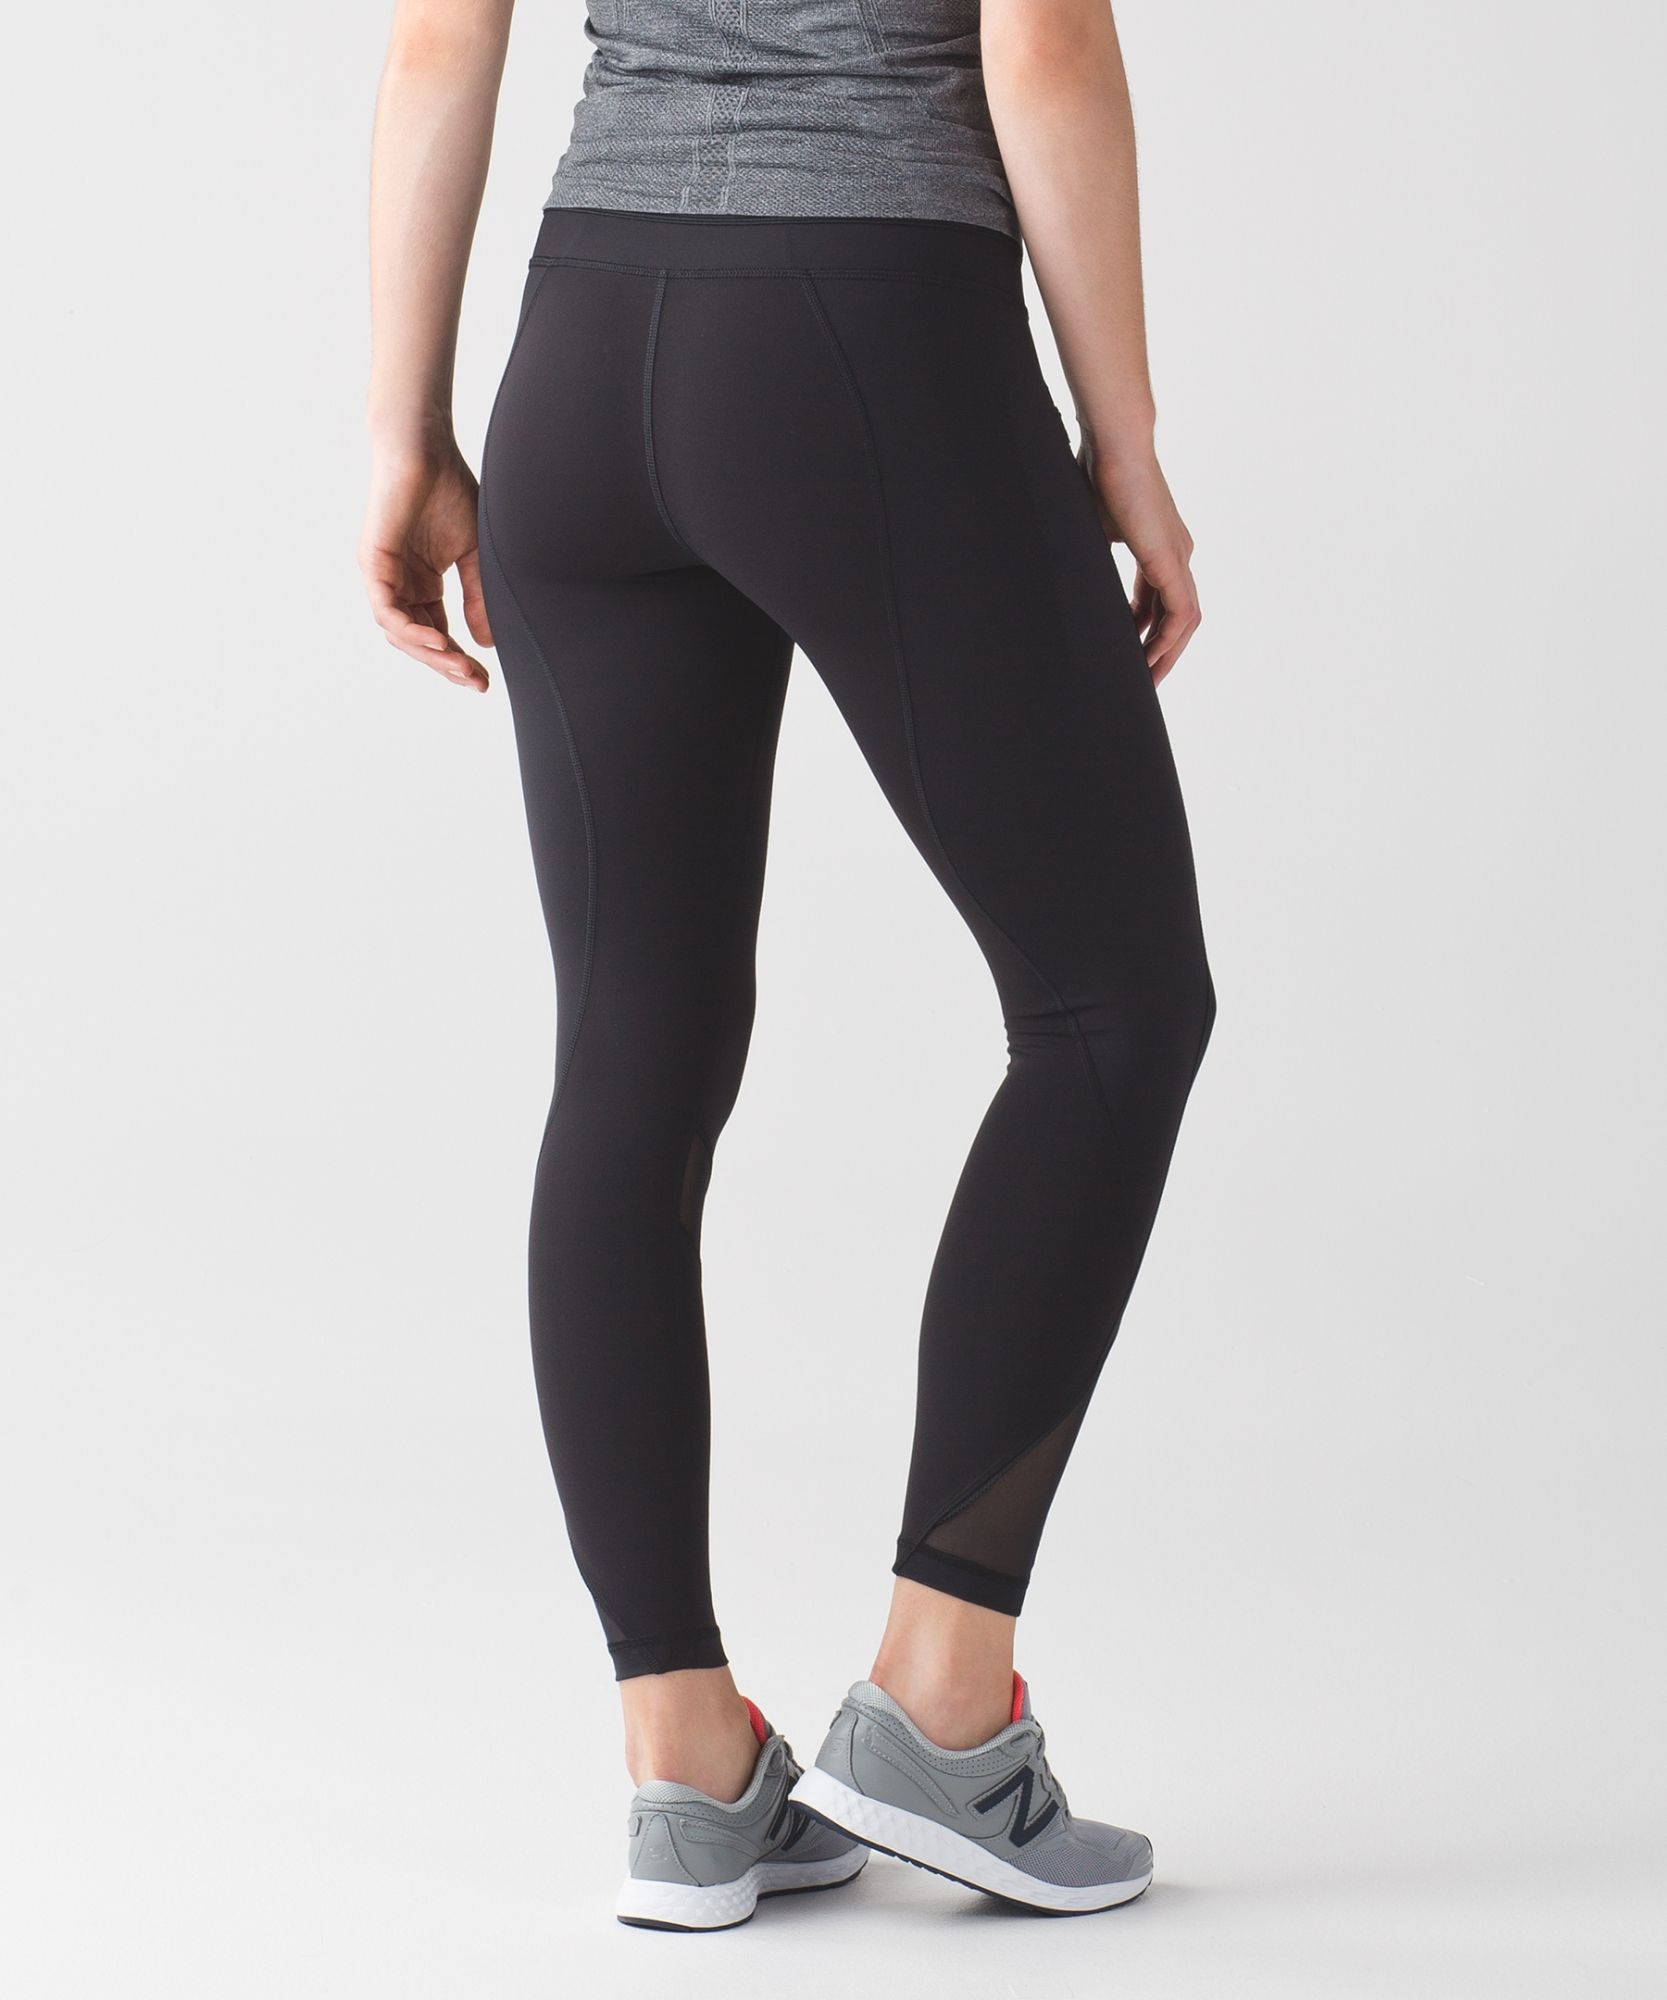 clients first in stock factory price ecsmh SHoes on | Nike Shoes | Pants for women, Running pants ...